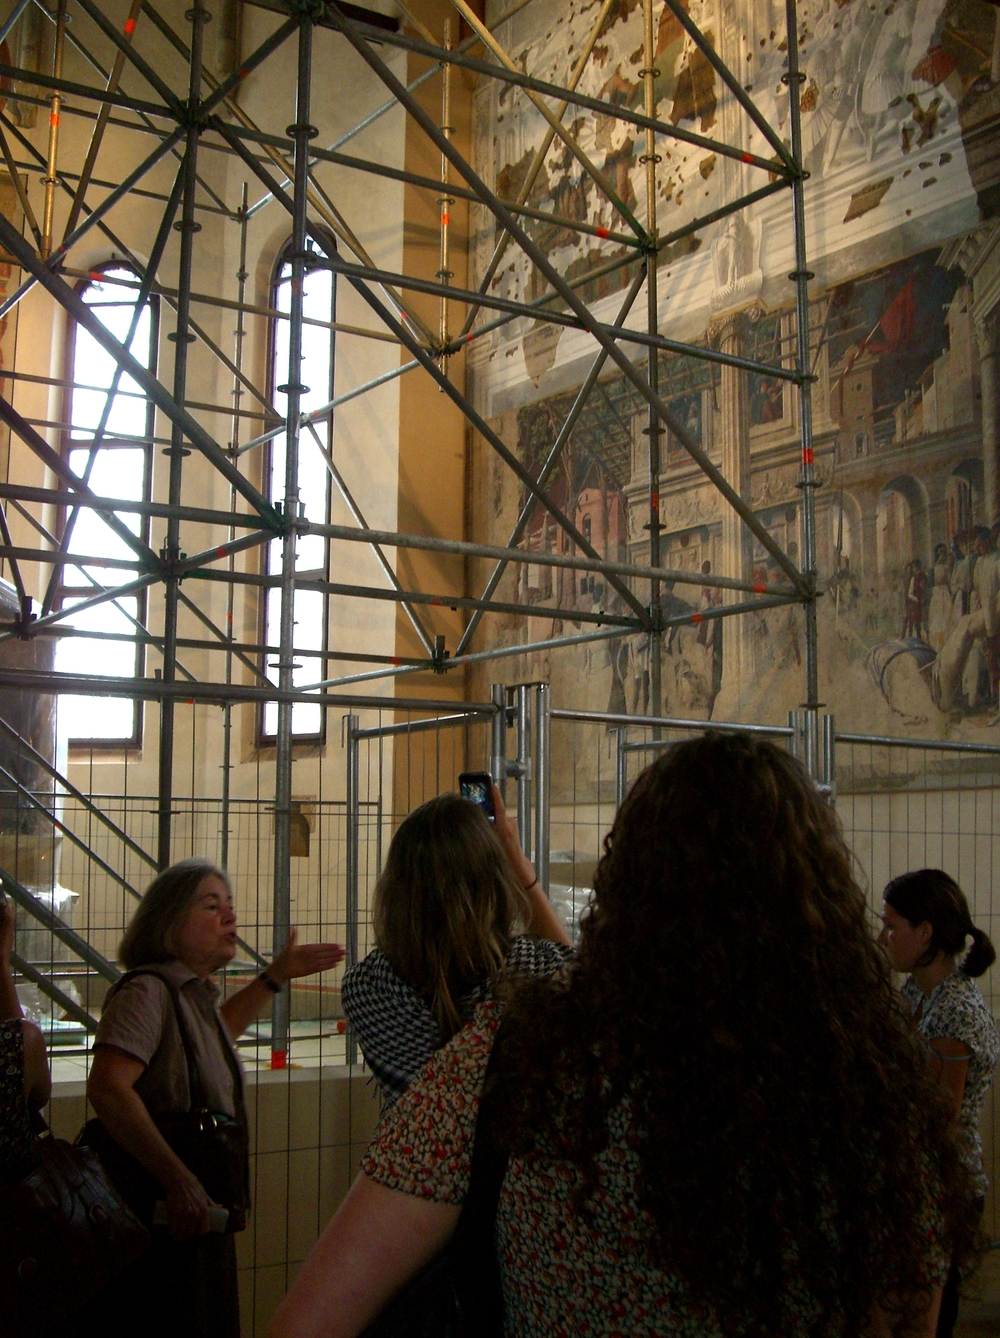 Diana Gisolfi lecturing to the group on Andrea Mantegna frescoes at the Church of the Eremitani, Padua.